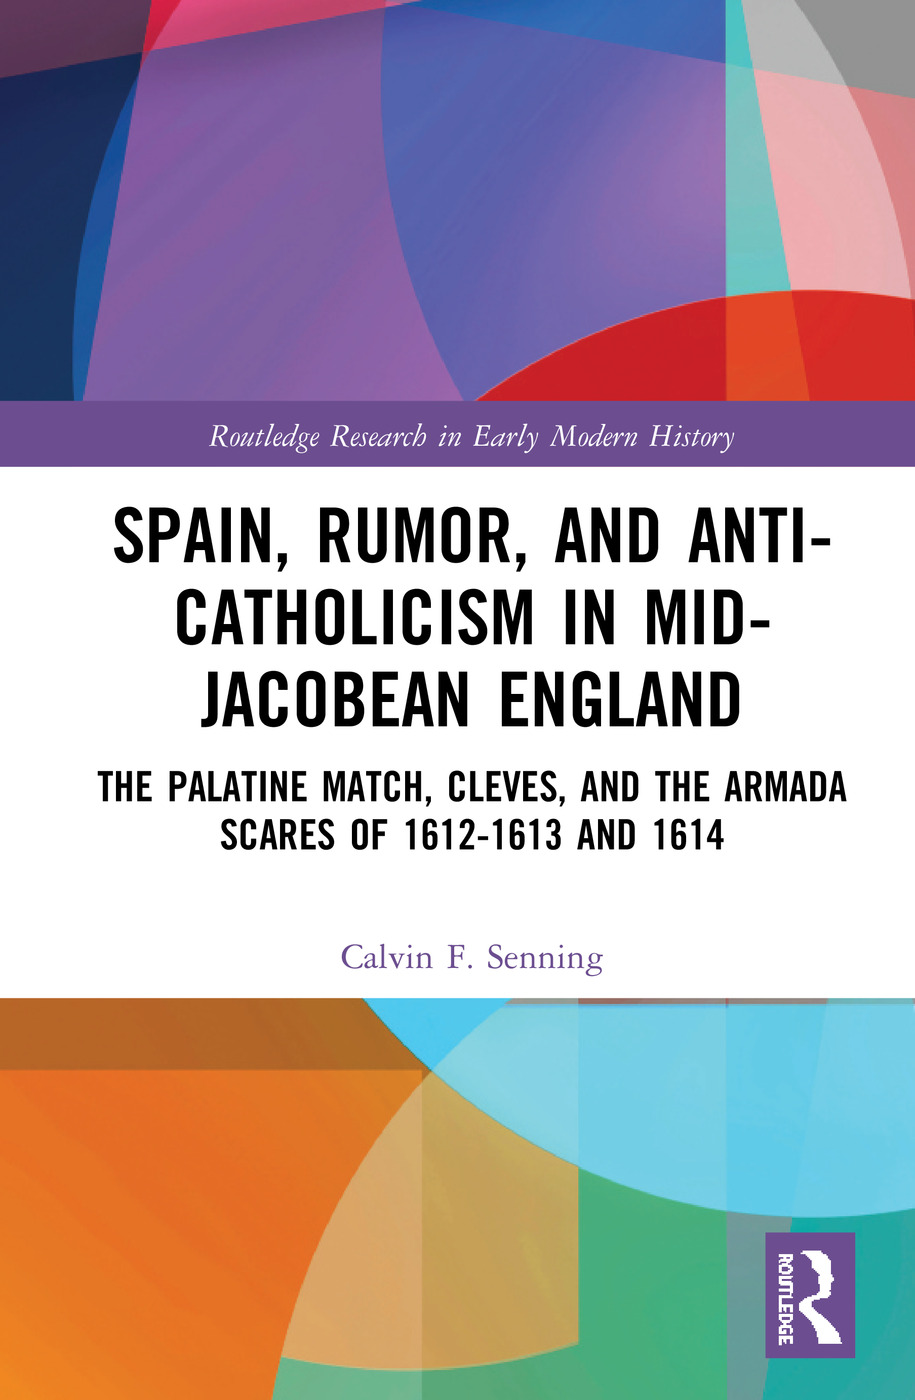 Spain, Rumor, and Anti-Catholicism in Mid-Jacobean England: The Palatine Match, Cleves, and the Armada Scares of 1612-1613 and 1614 book cover